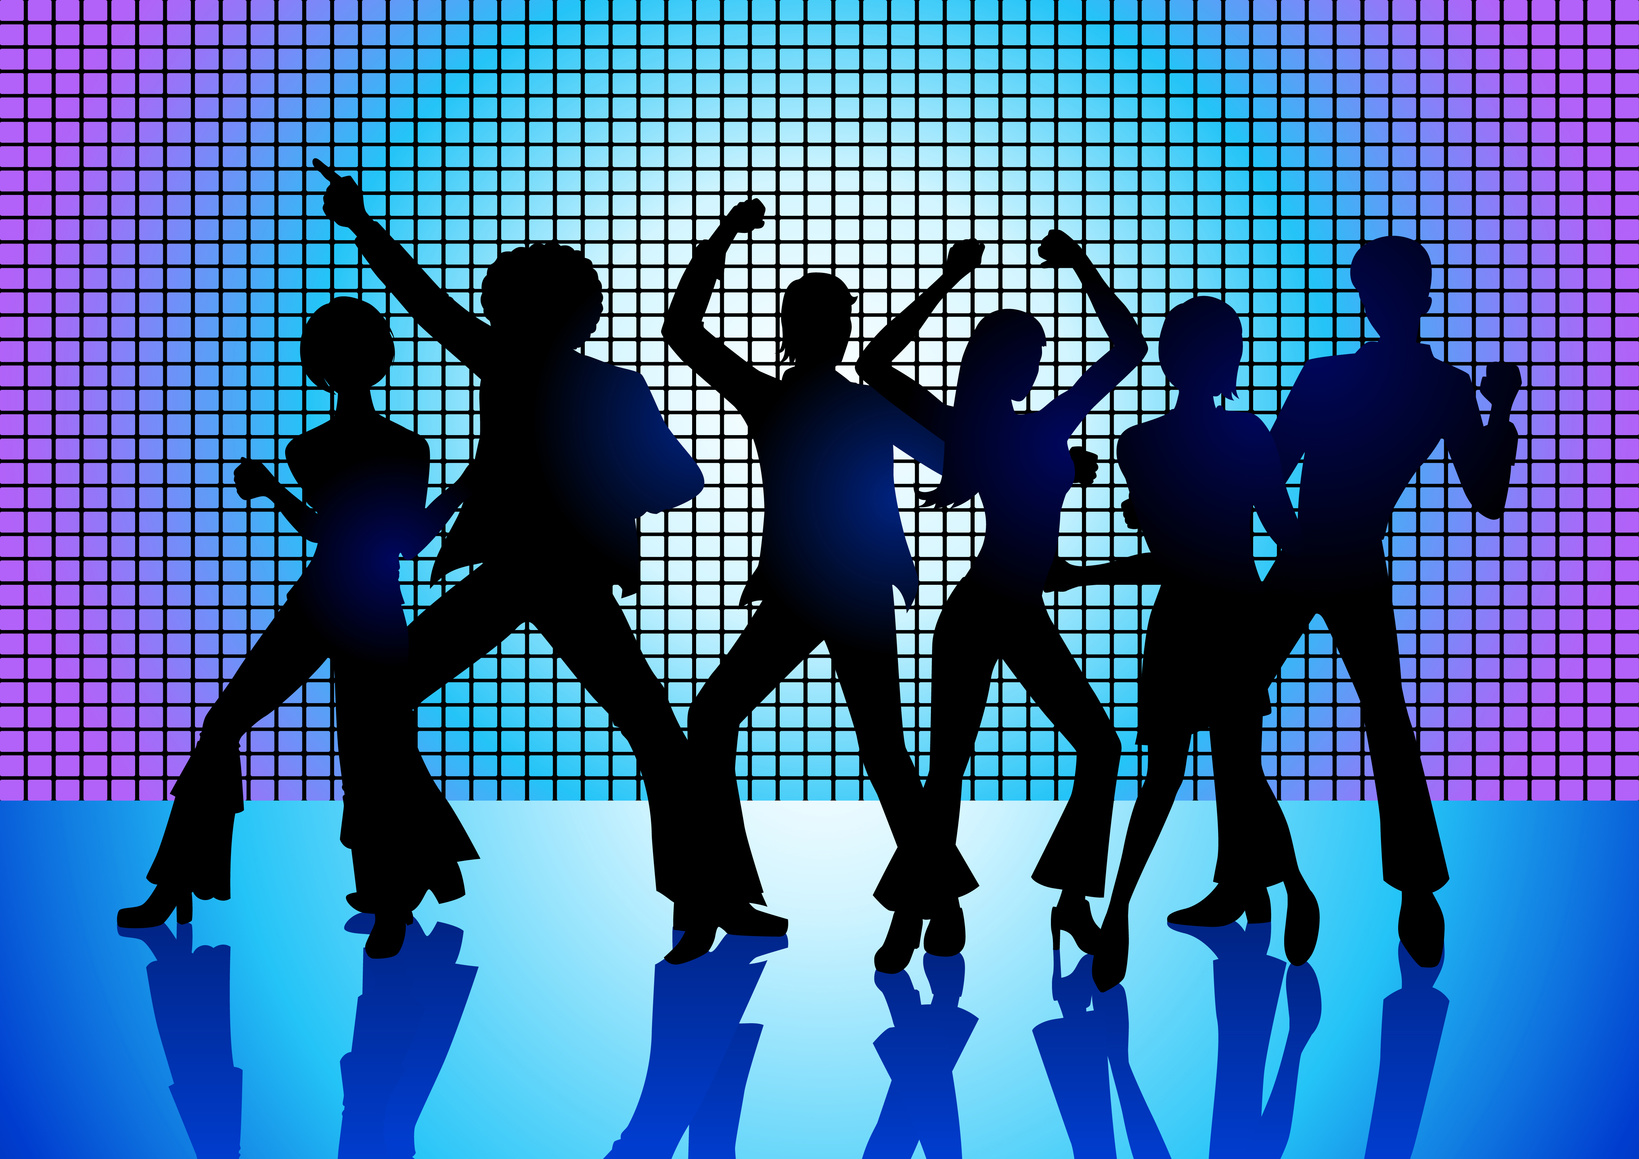 Illustration of people's outlines dancing in a disco